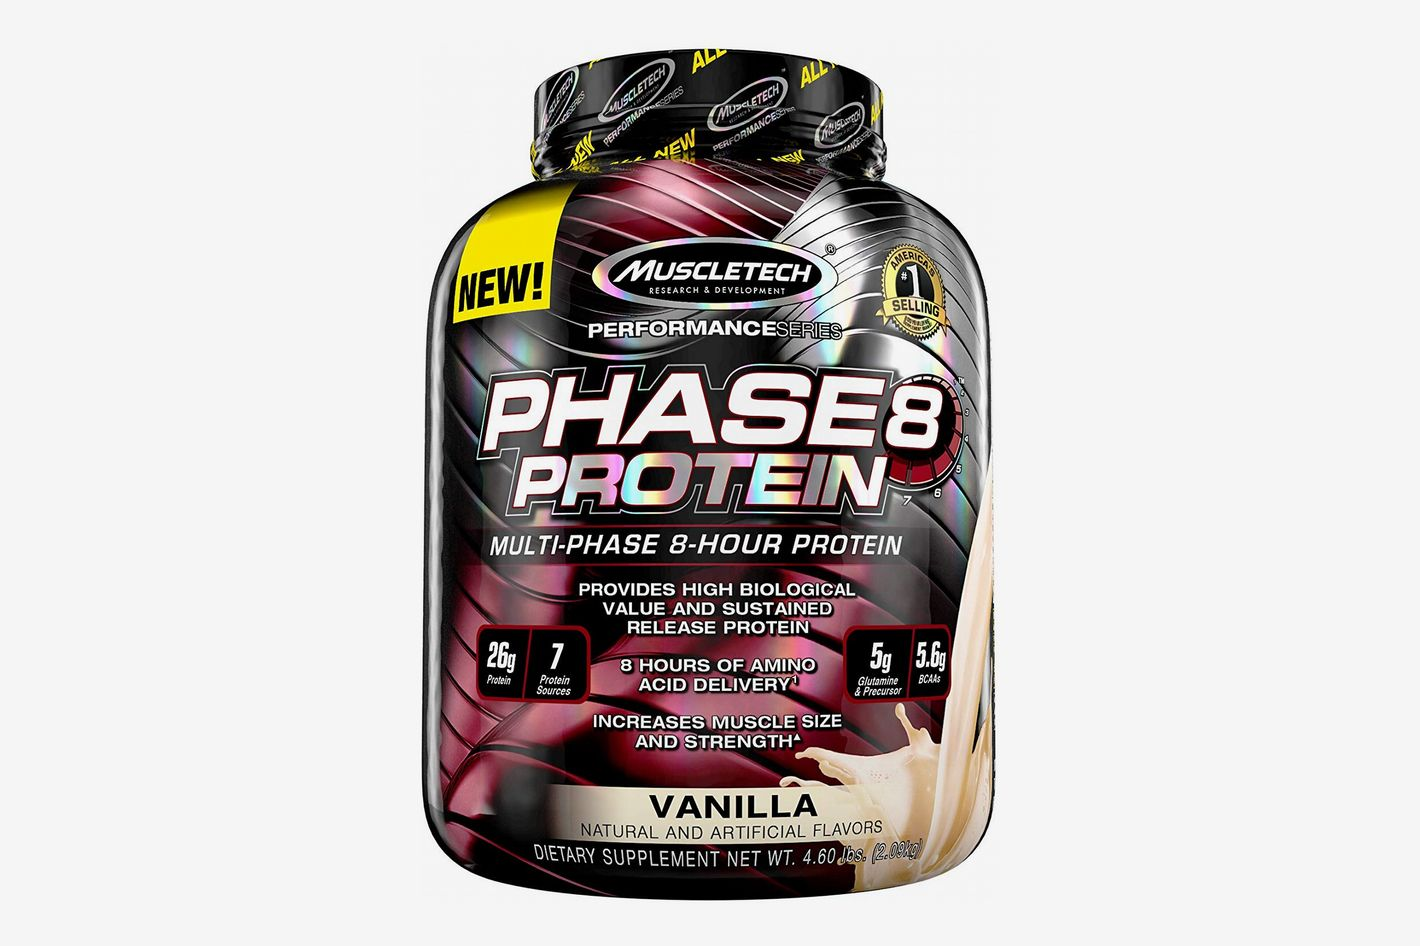 MuscleTech Phase8 Protein Powder, Sustained Release 8-Hour Protein Shake, Vanilla